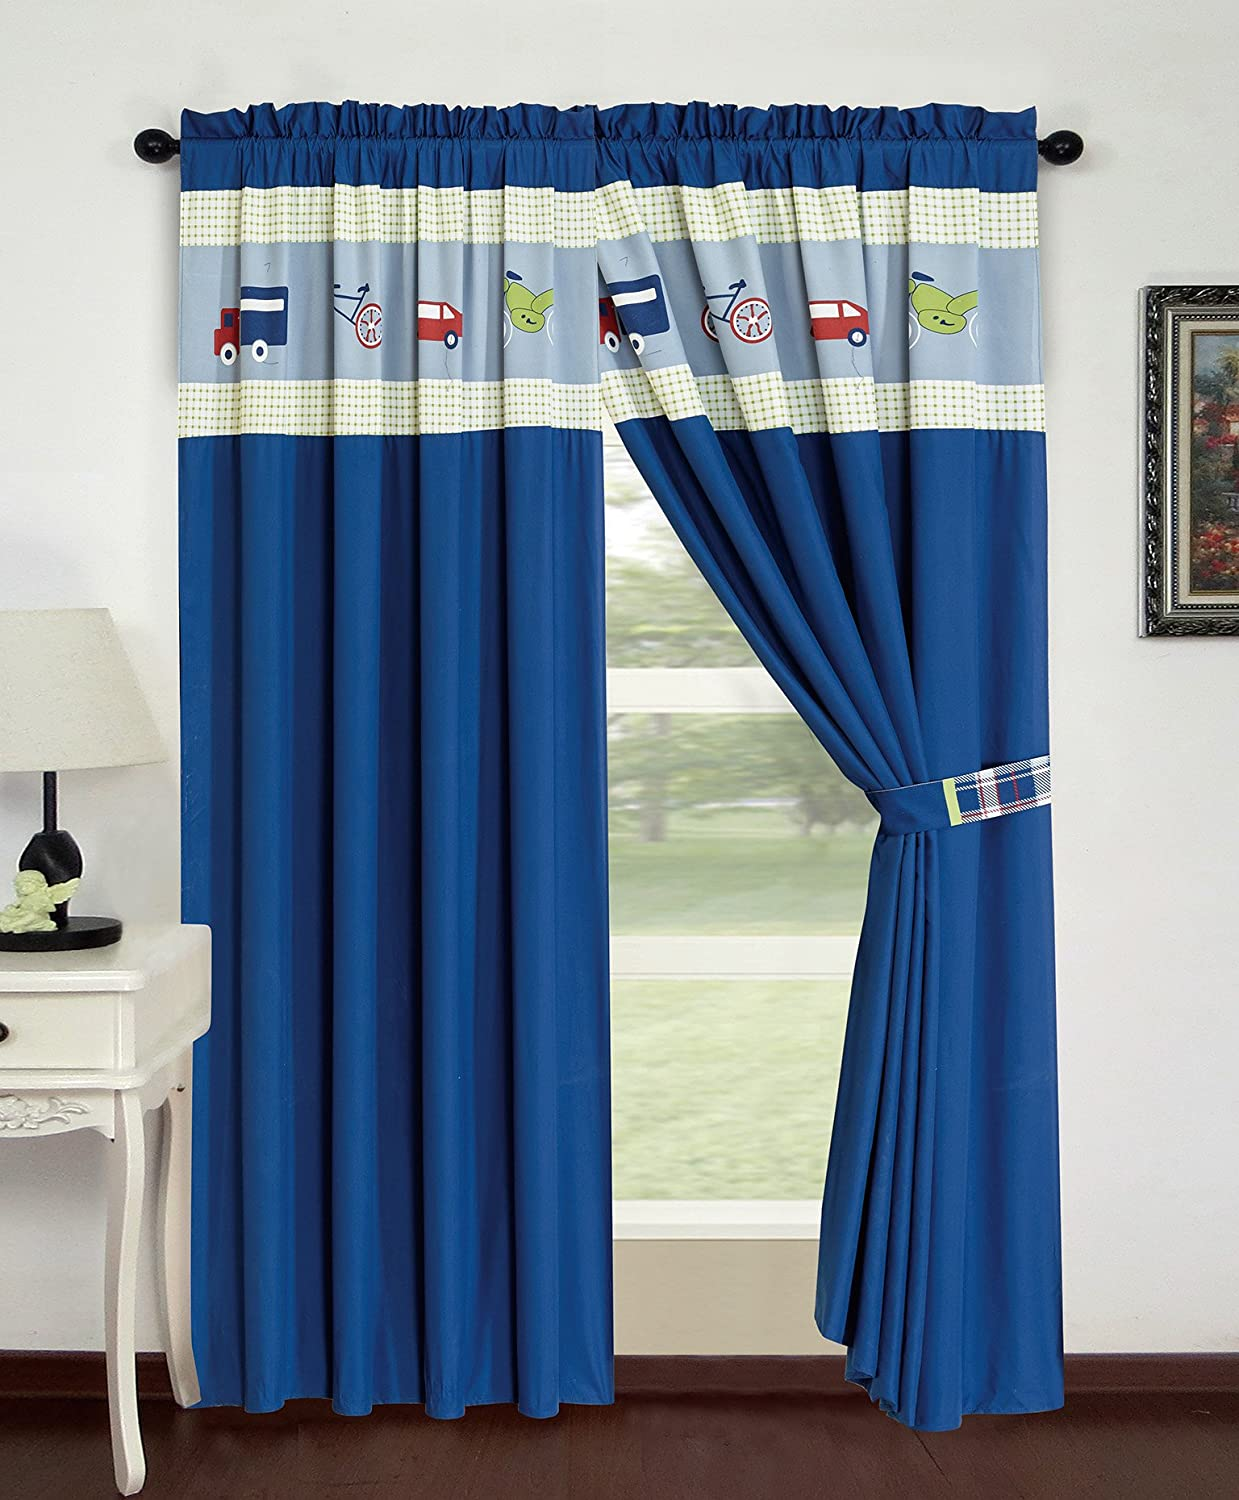 All American Collection 4 Piece Auto's Curtain Set with Attached Sheer Backing Curtain Set, Navy